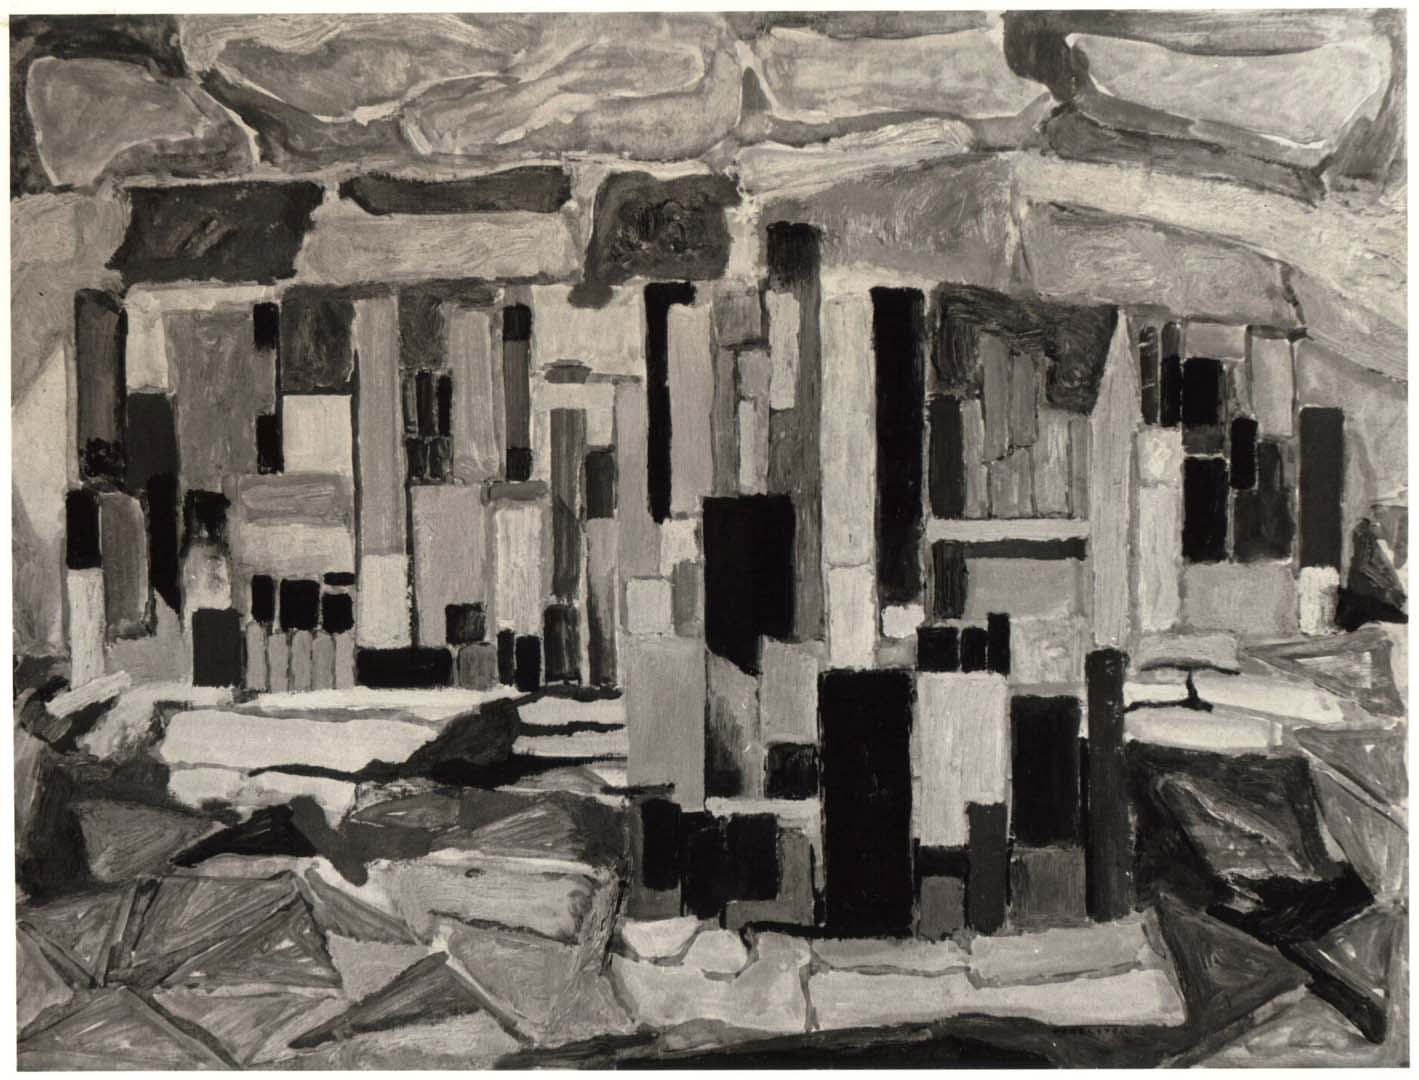 1950 Study for the City Casein and Oil on Board 18 x 24